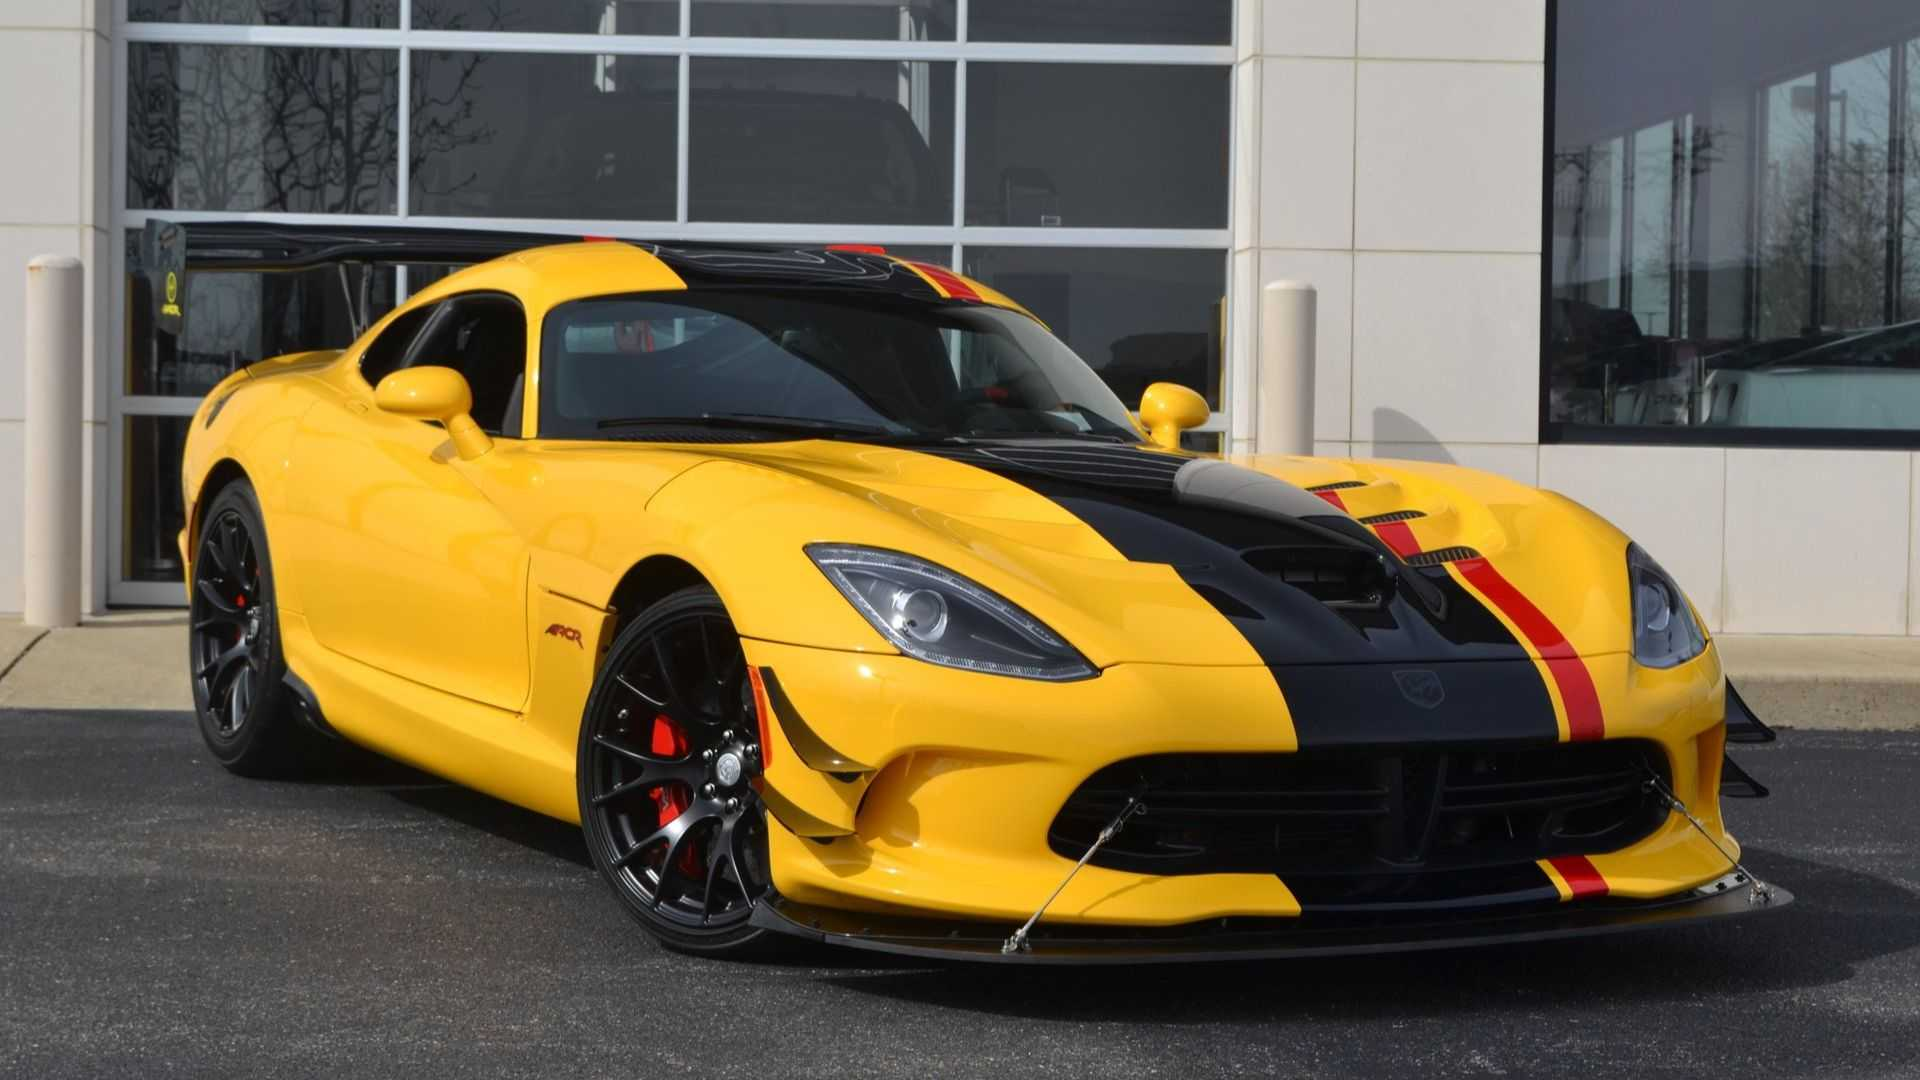 2017 Dodge Viper Gtc >> 2016 Dodge Viper ACR Extreme: The Last Hurrah For The V10 ...